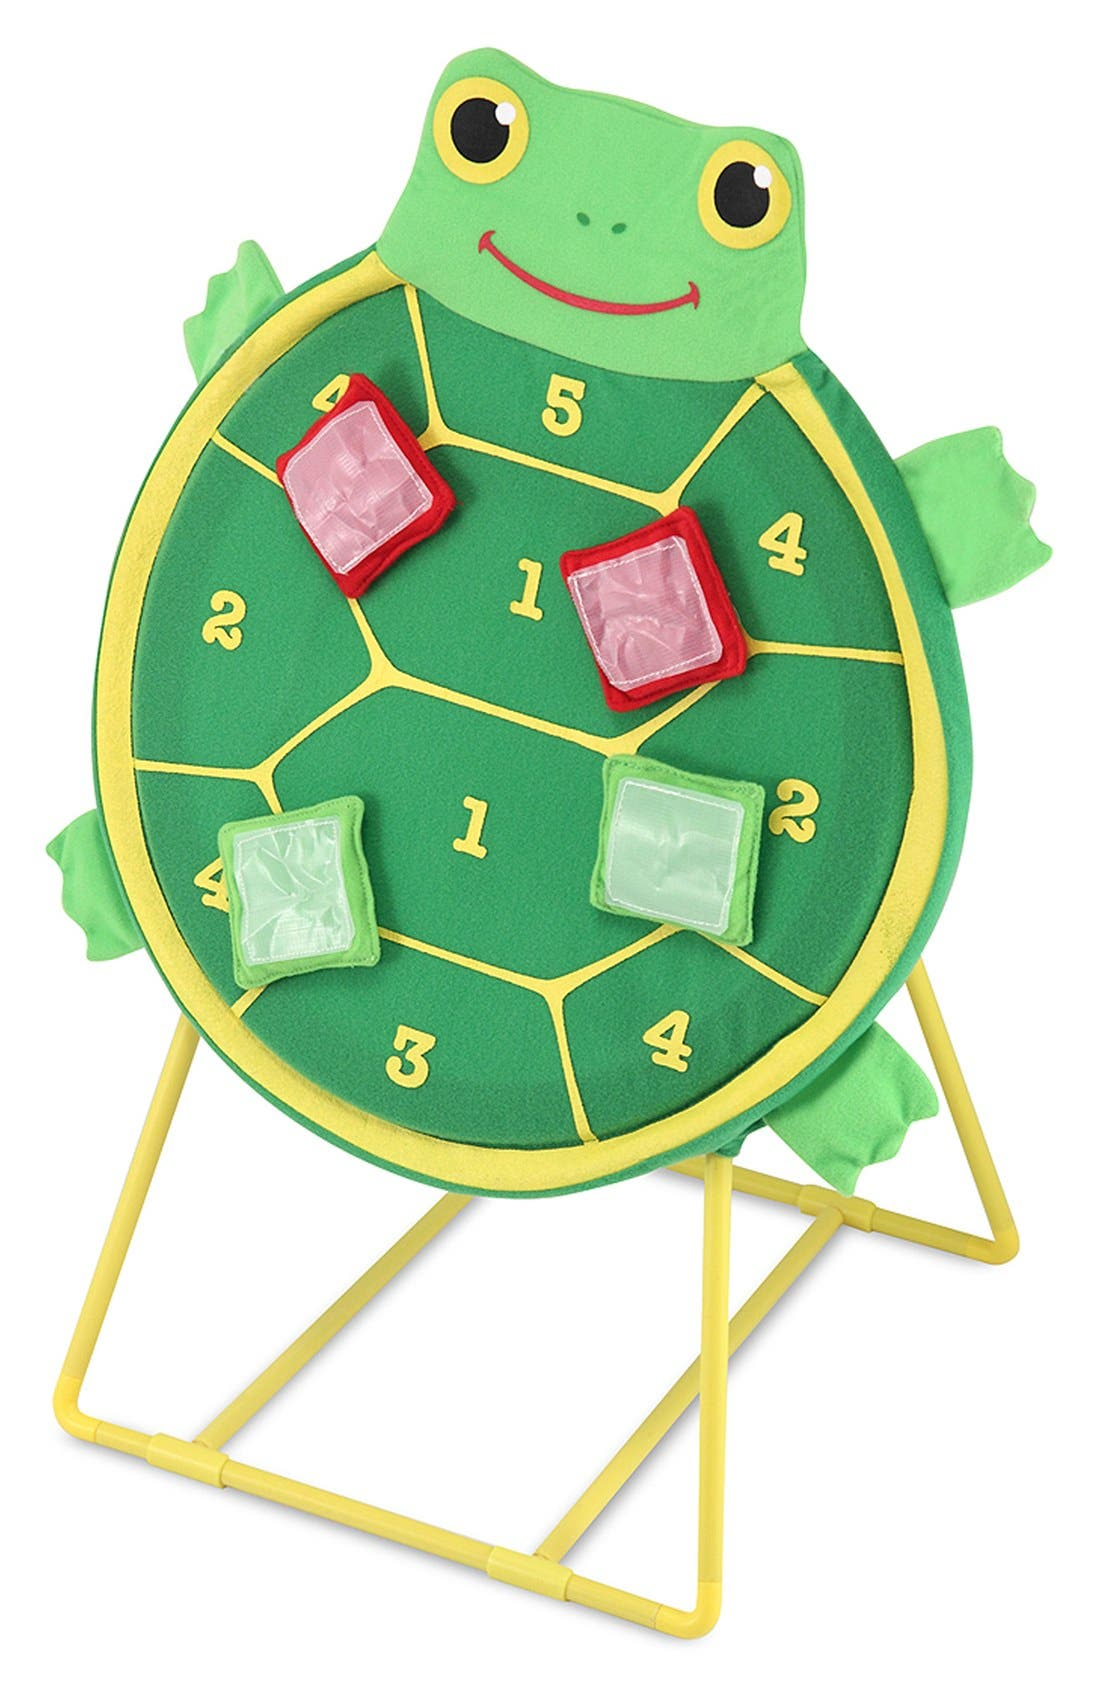 'Tootle Turtle' Target Game,                             Main thumbnail 1, color,                             300